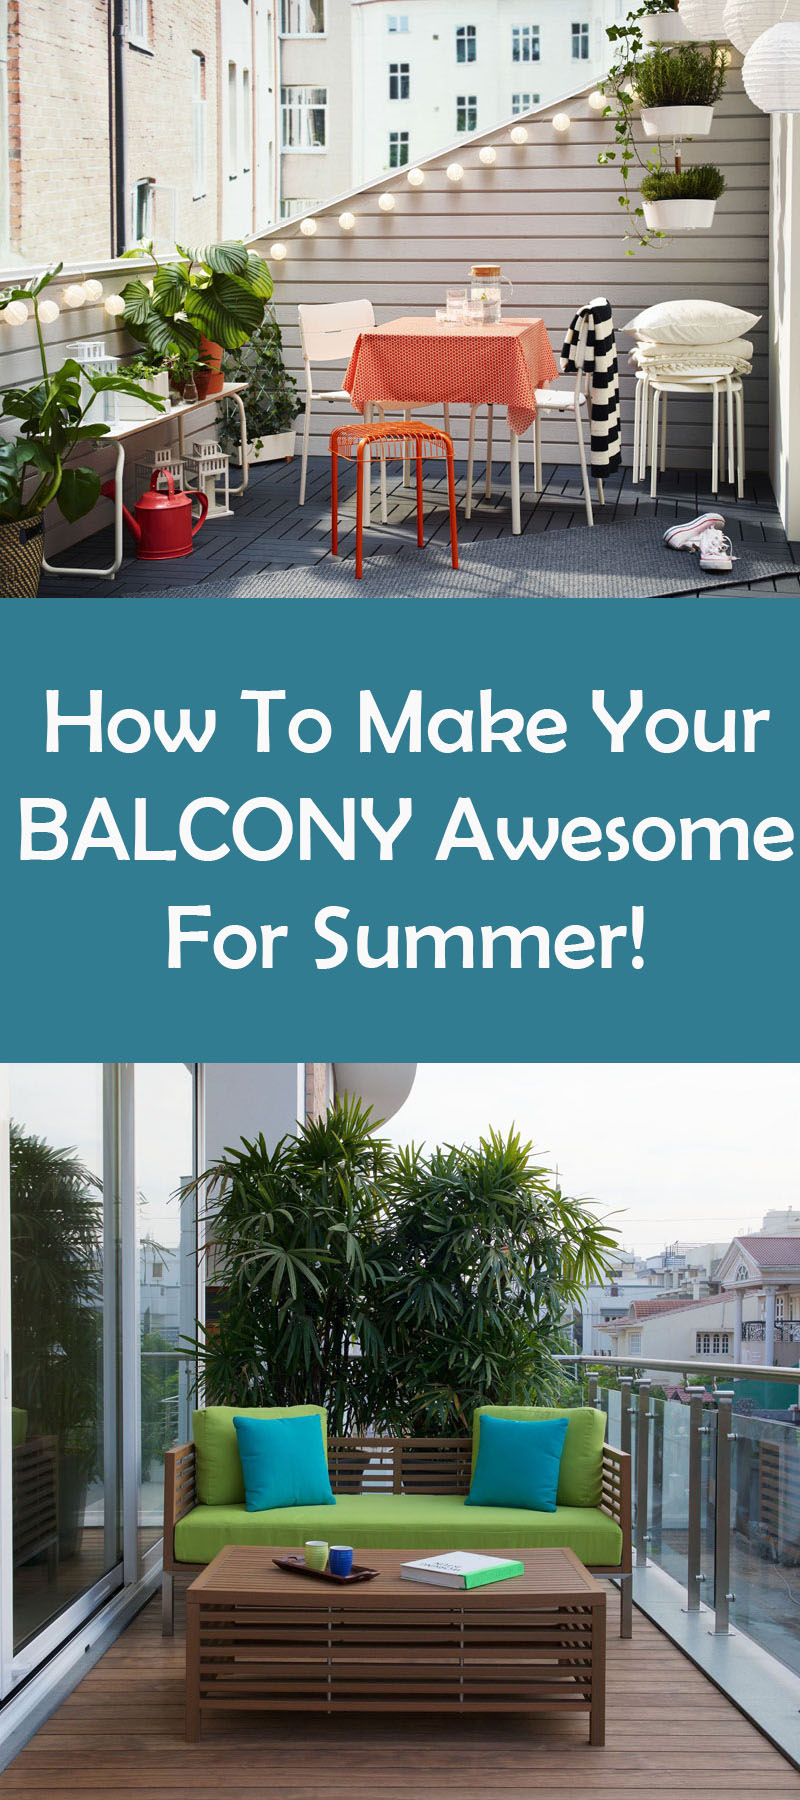 How To Make Your Balcony Awesome For Summer //